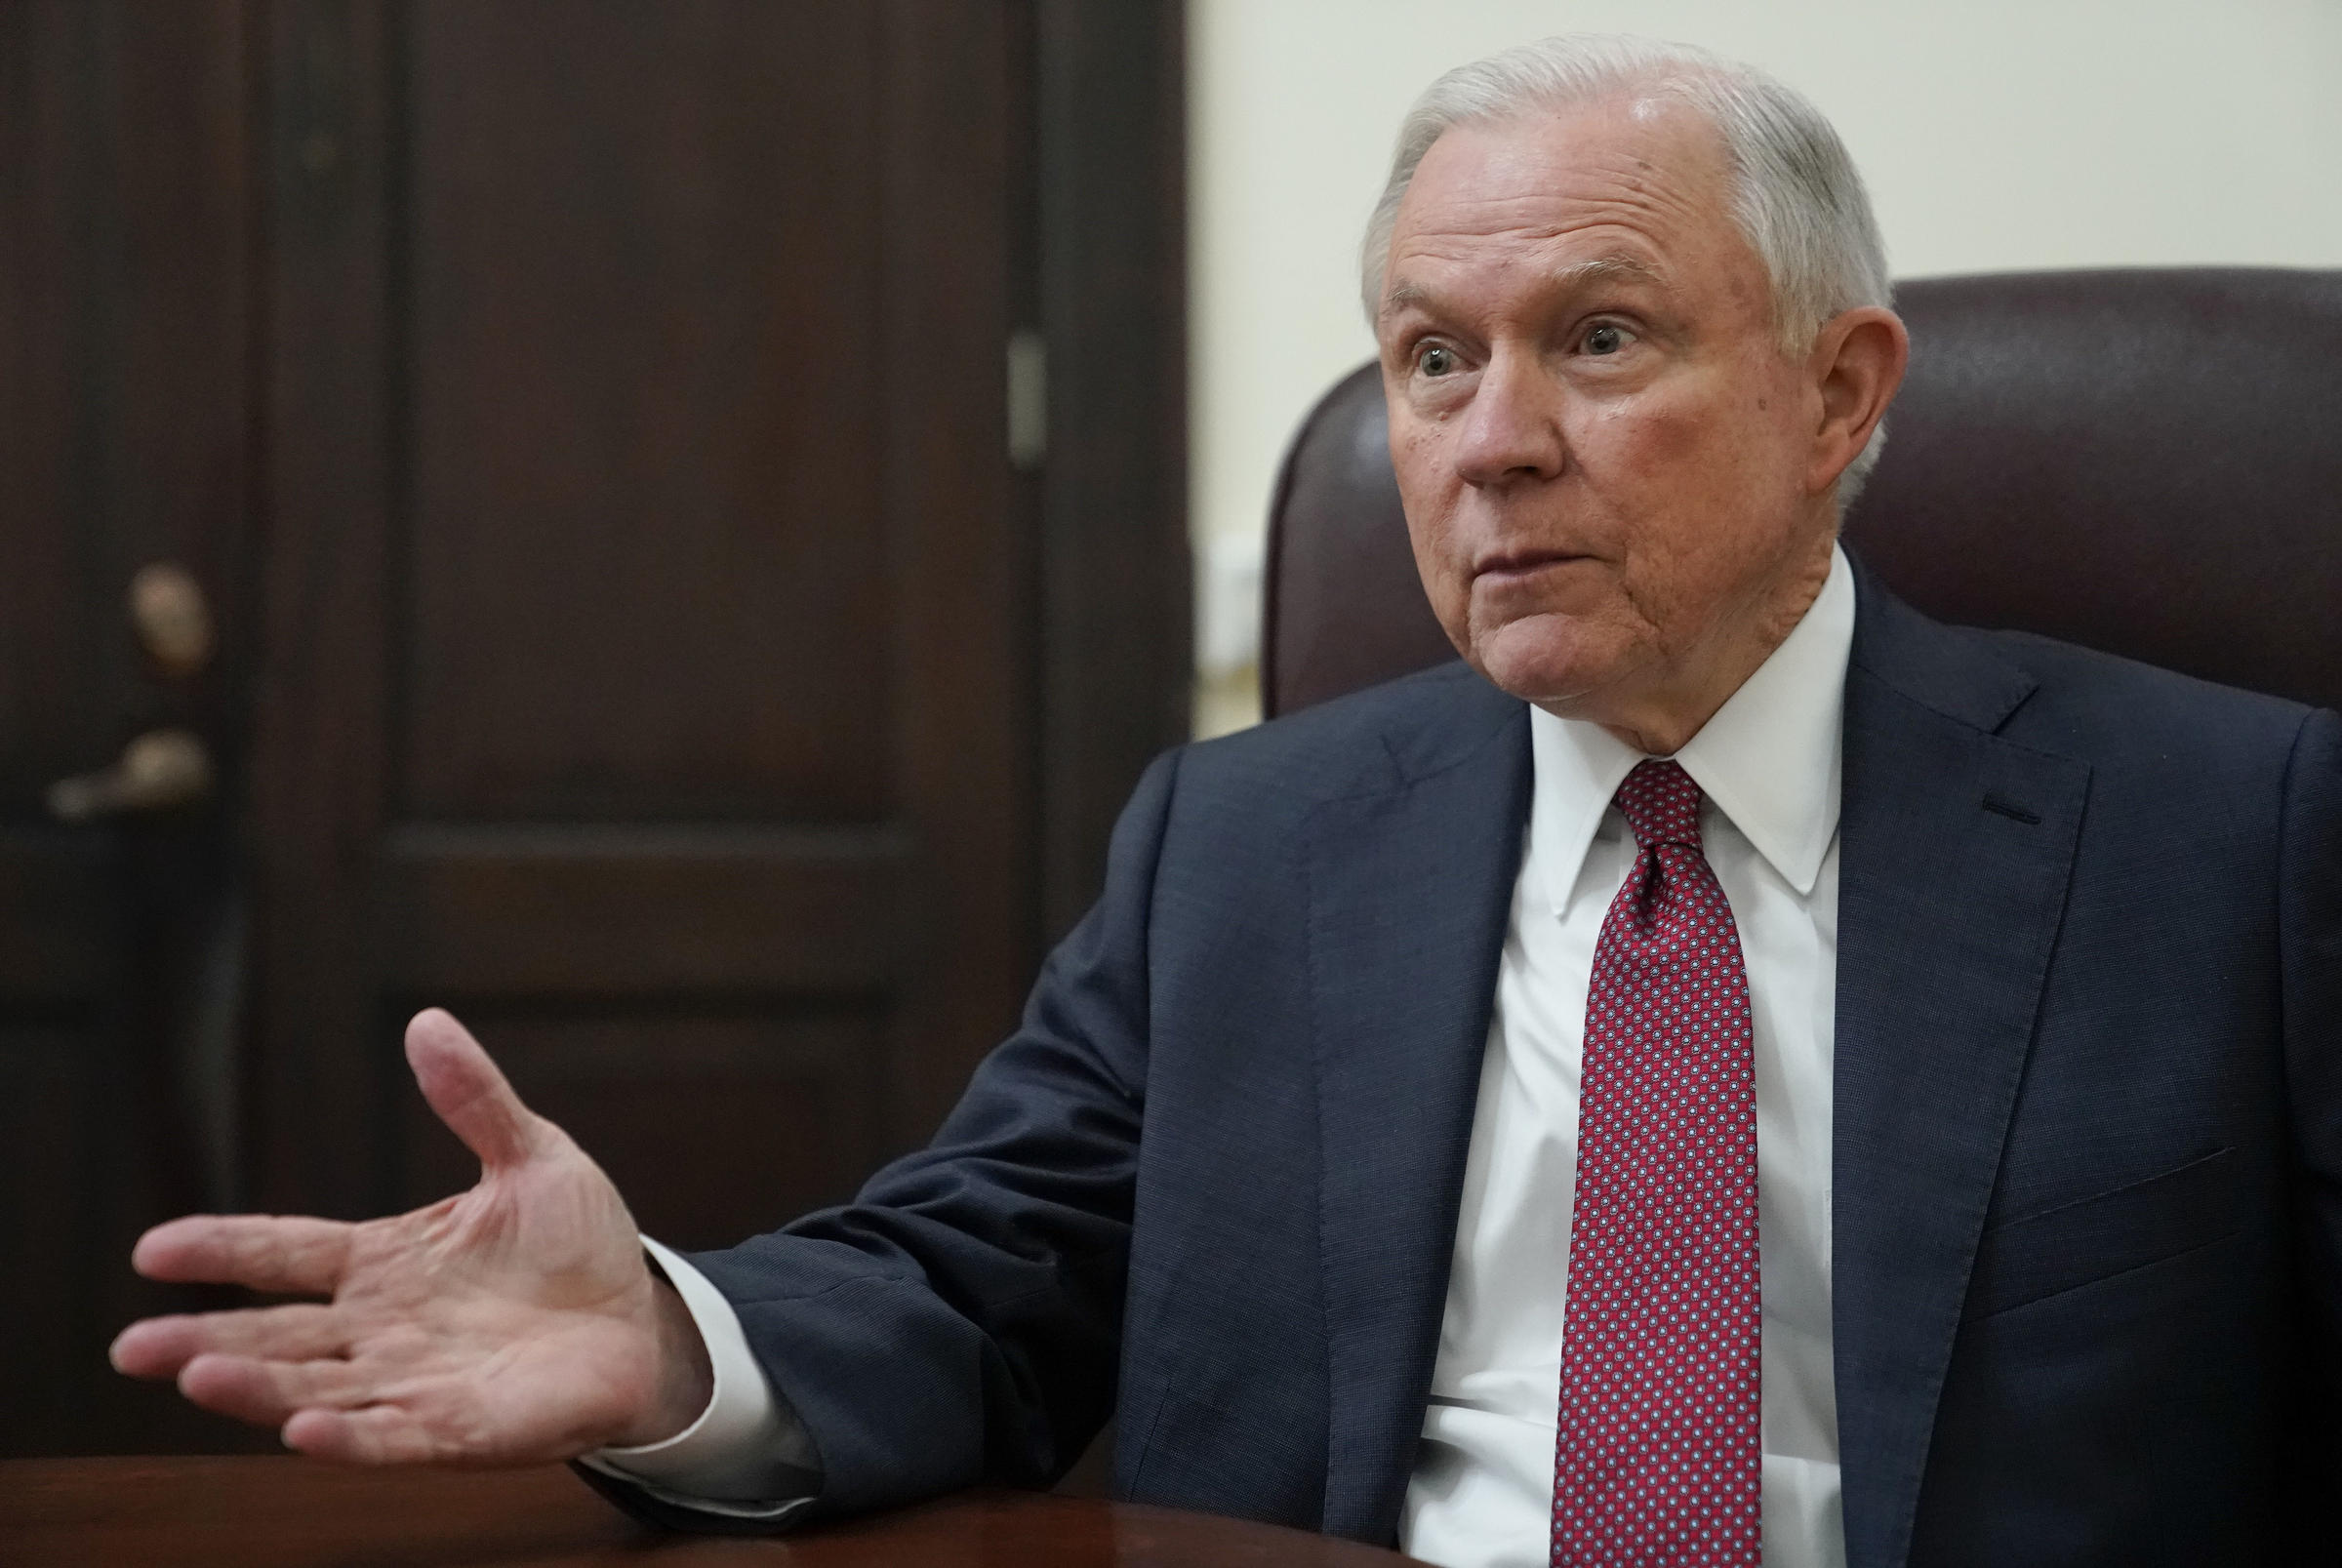 AG Jeff Sessions vows crackdown on leaks of classified information